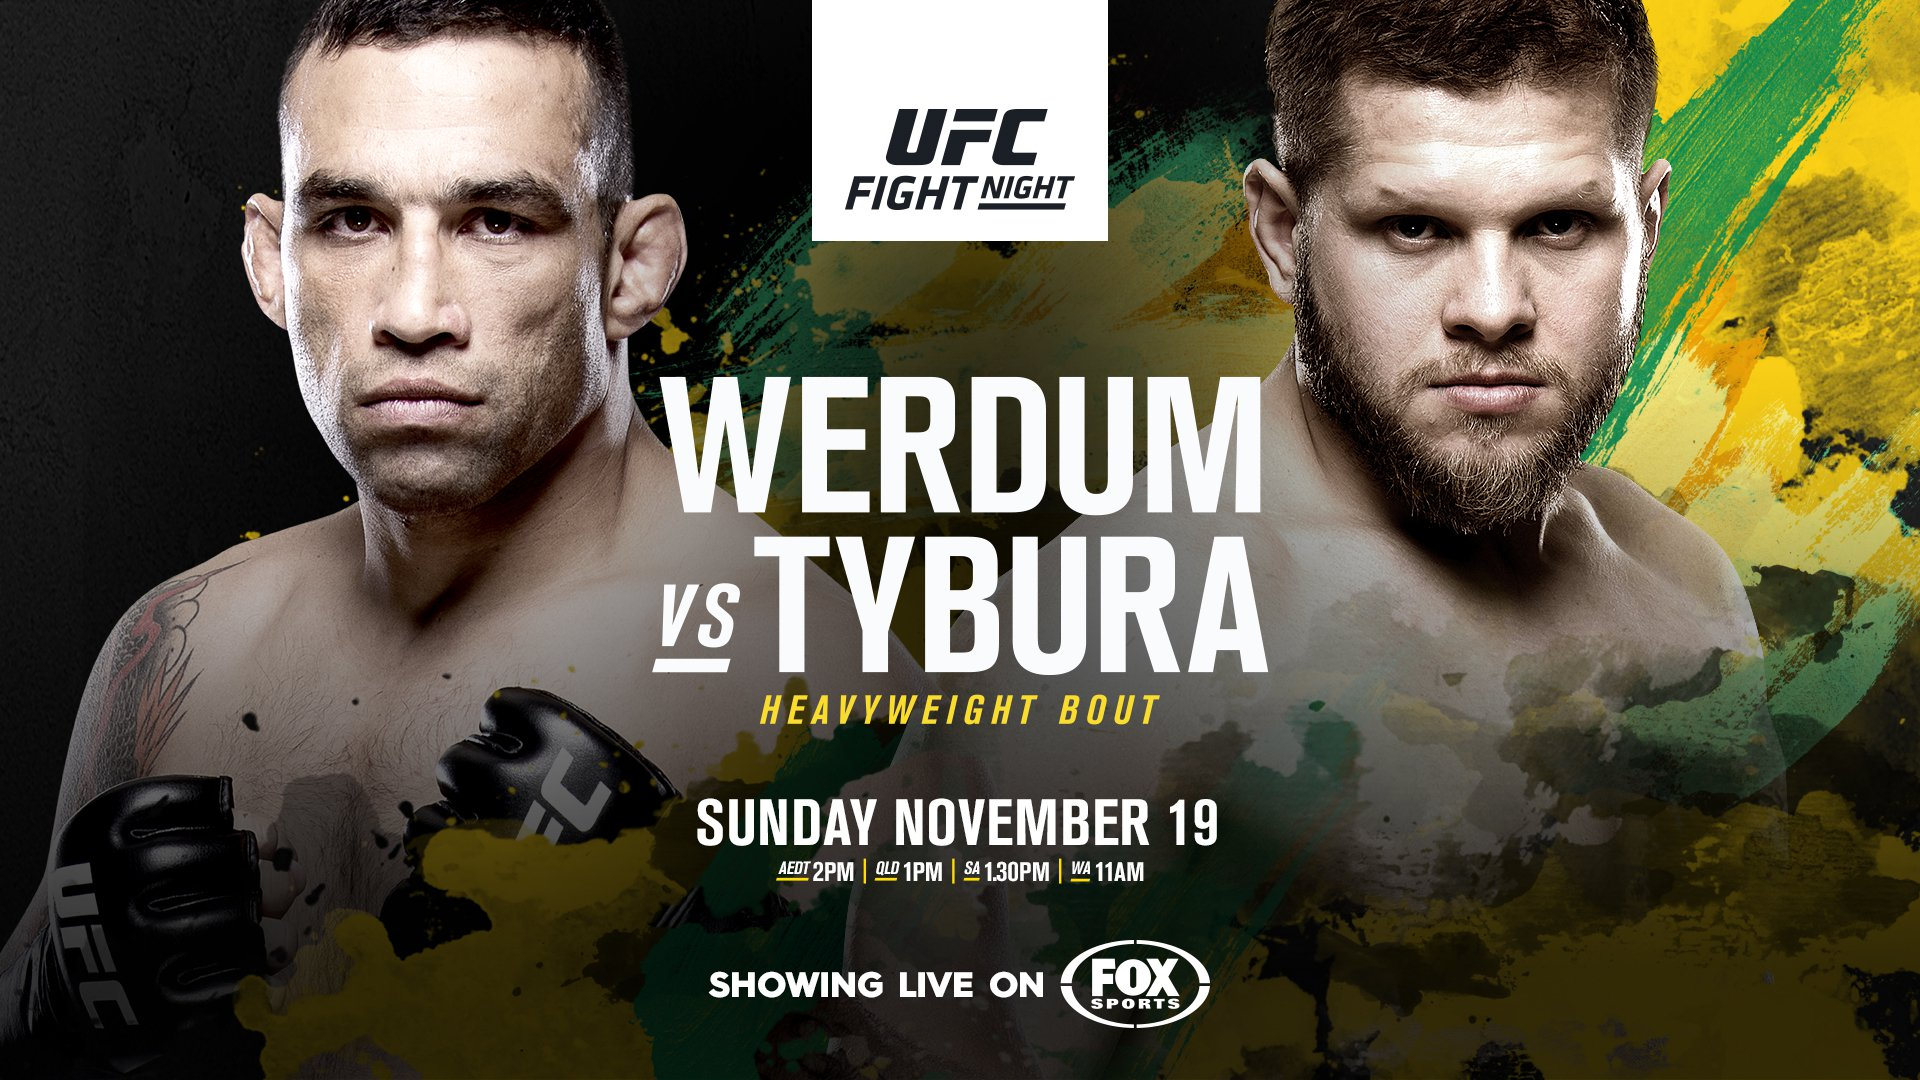 Event information results video and fighter information for UFC Fight Night